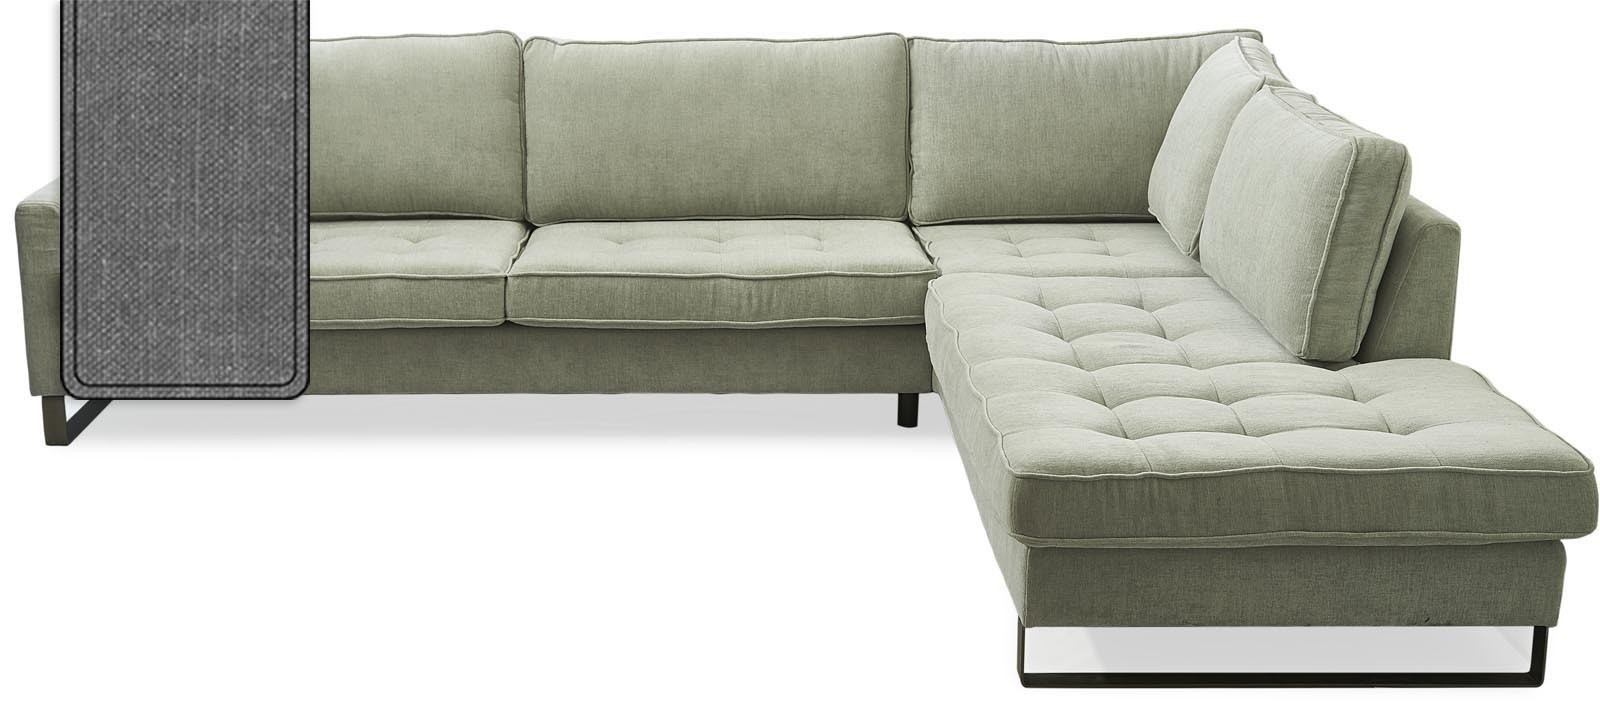 West Houston Corner Sofa Chaise Longue Right Cotton Grey Riviera